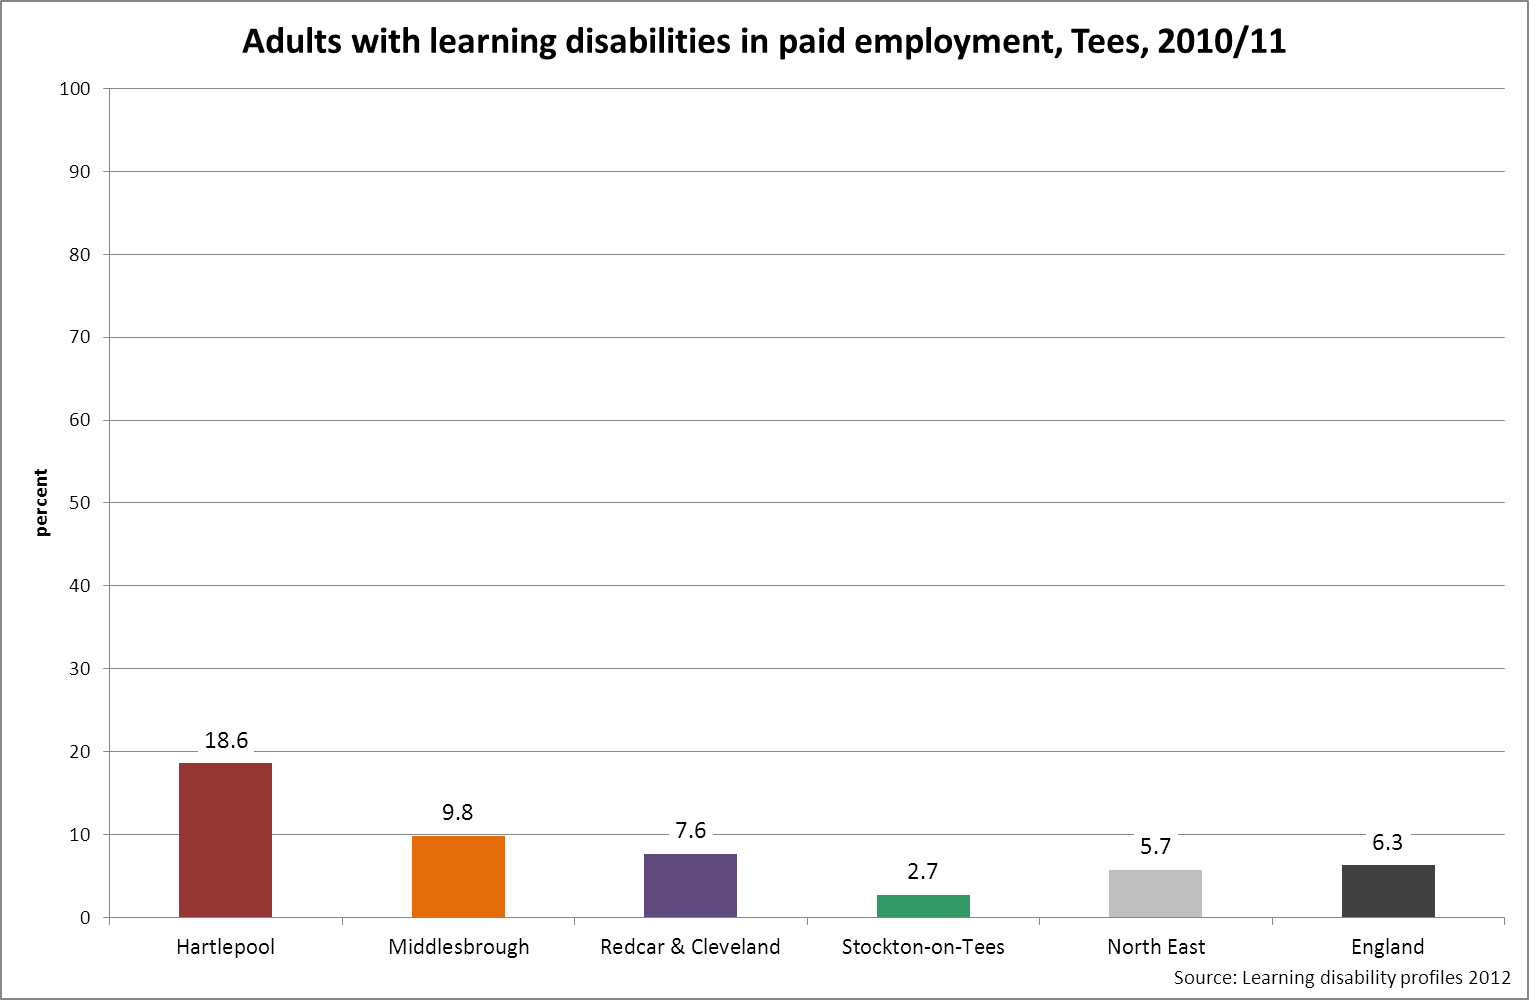 Employment and learning disabilities, Tees, 2010/11